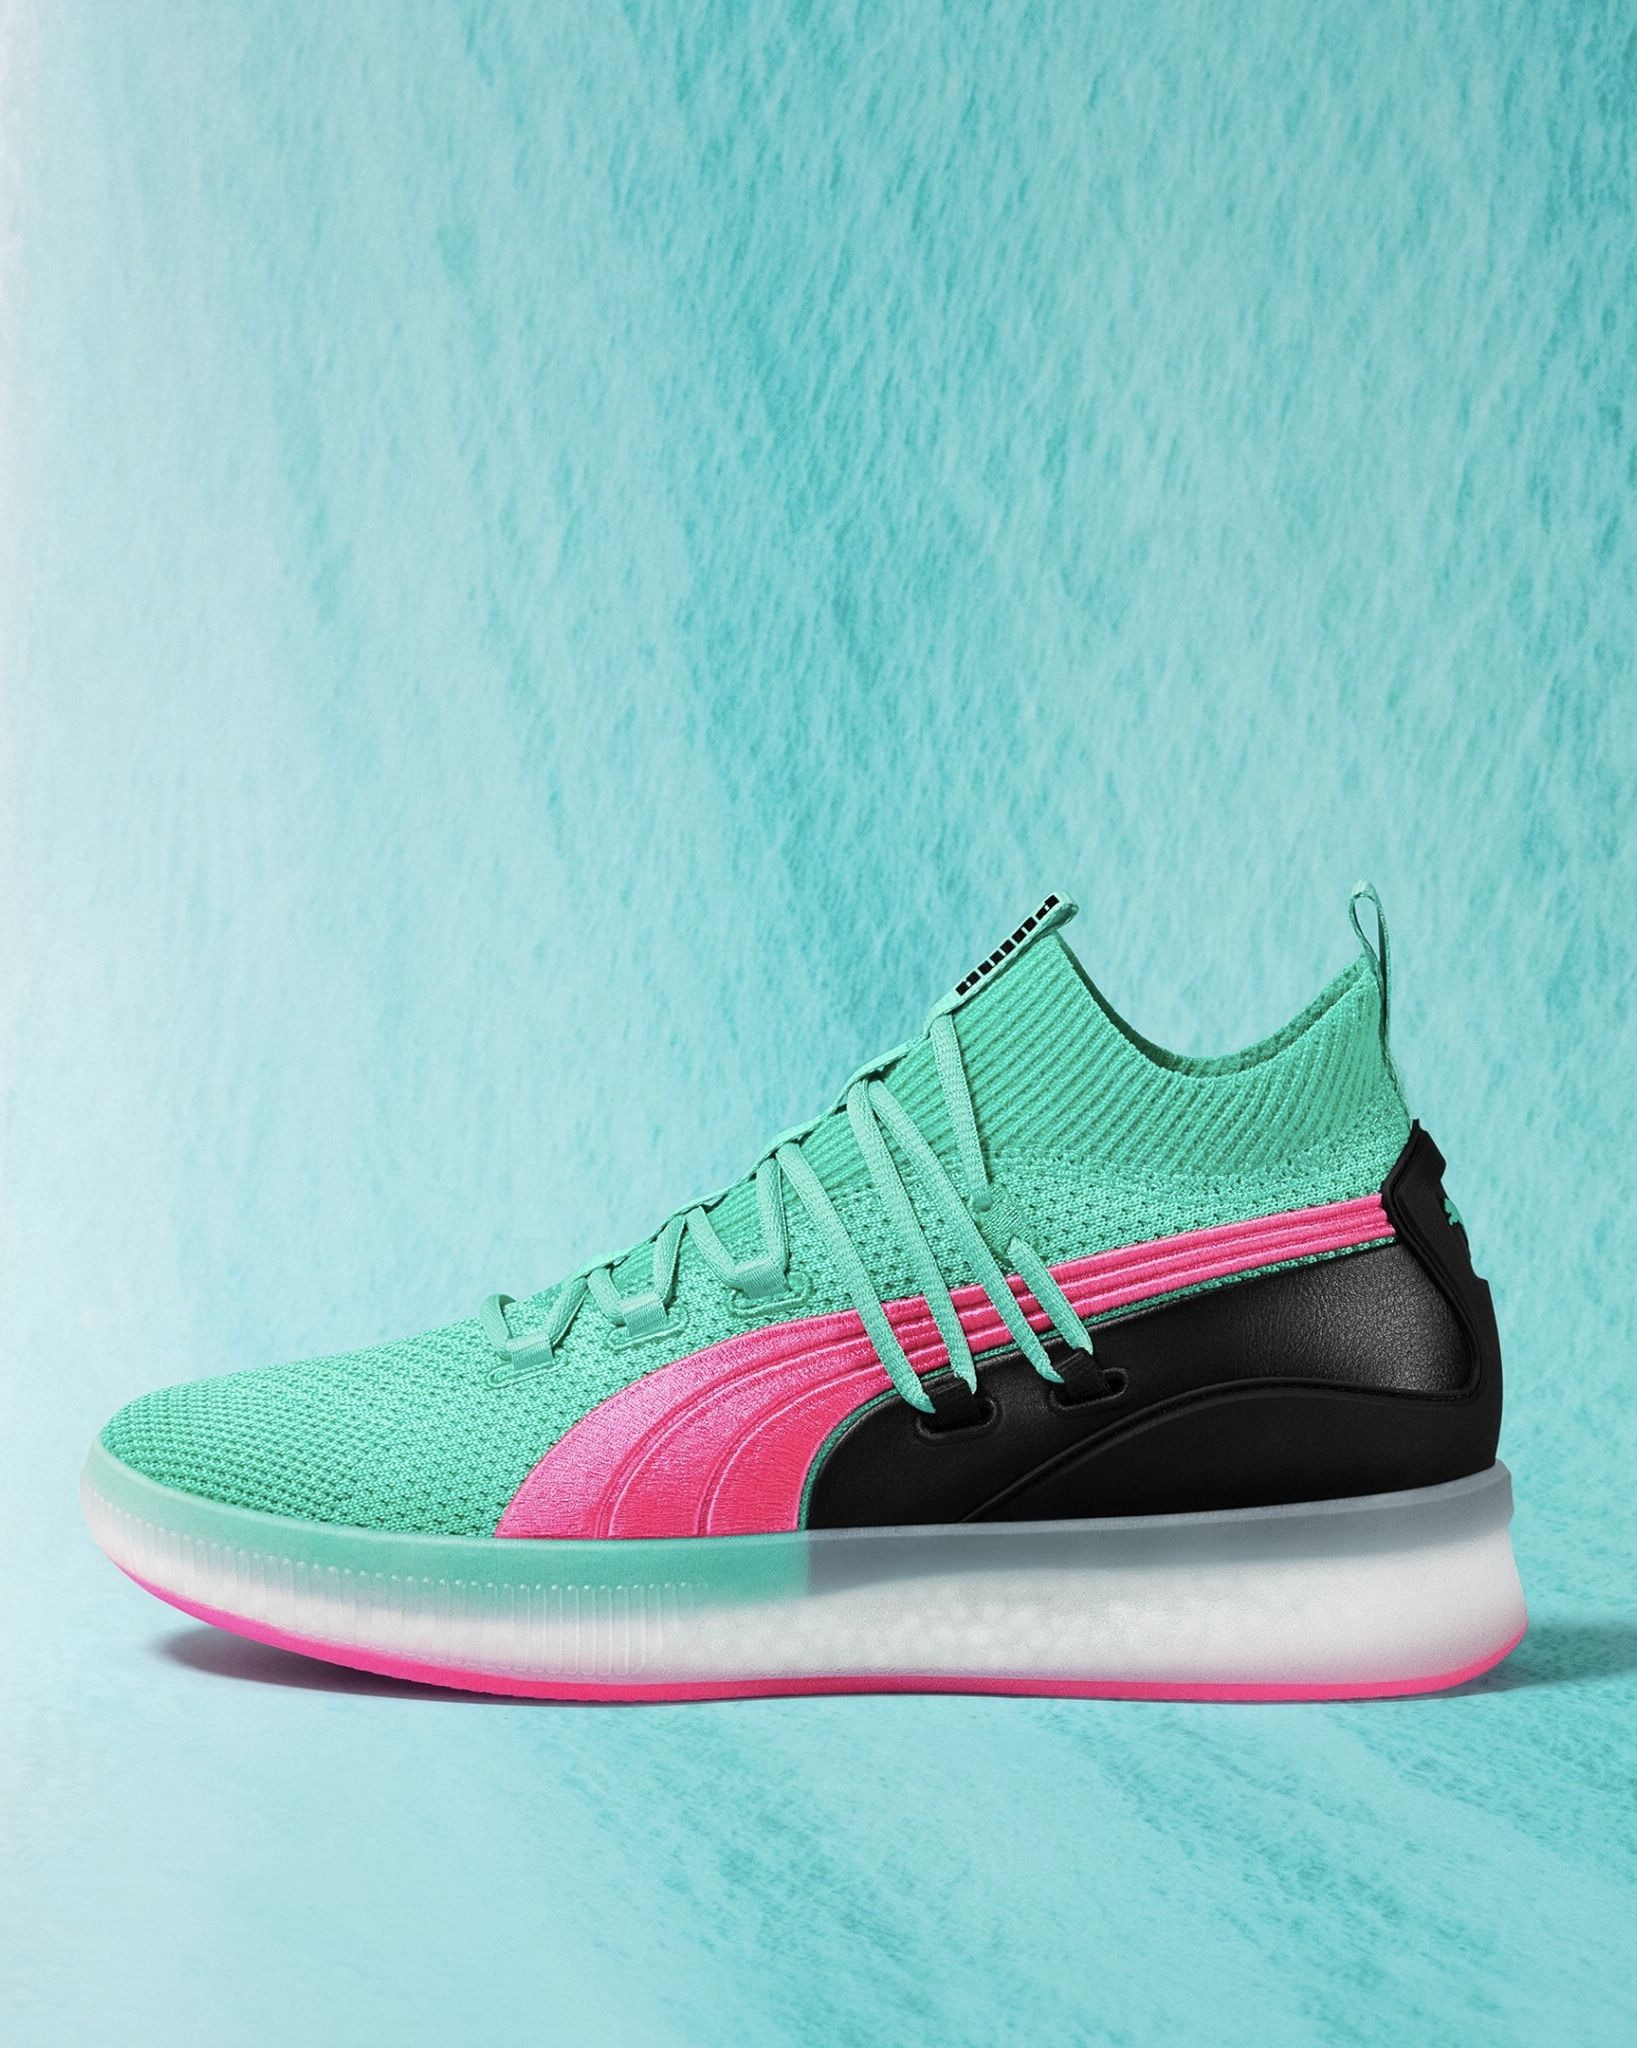 a04b4eeb6 Puma Clyde Court Disrupt | Sneakers: Puma Clyde | Sneakers nike ...